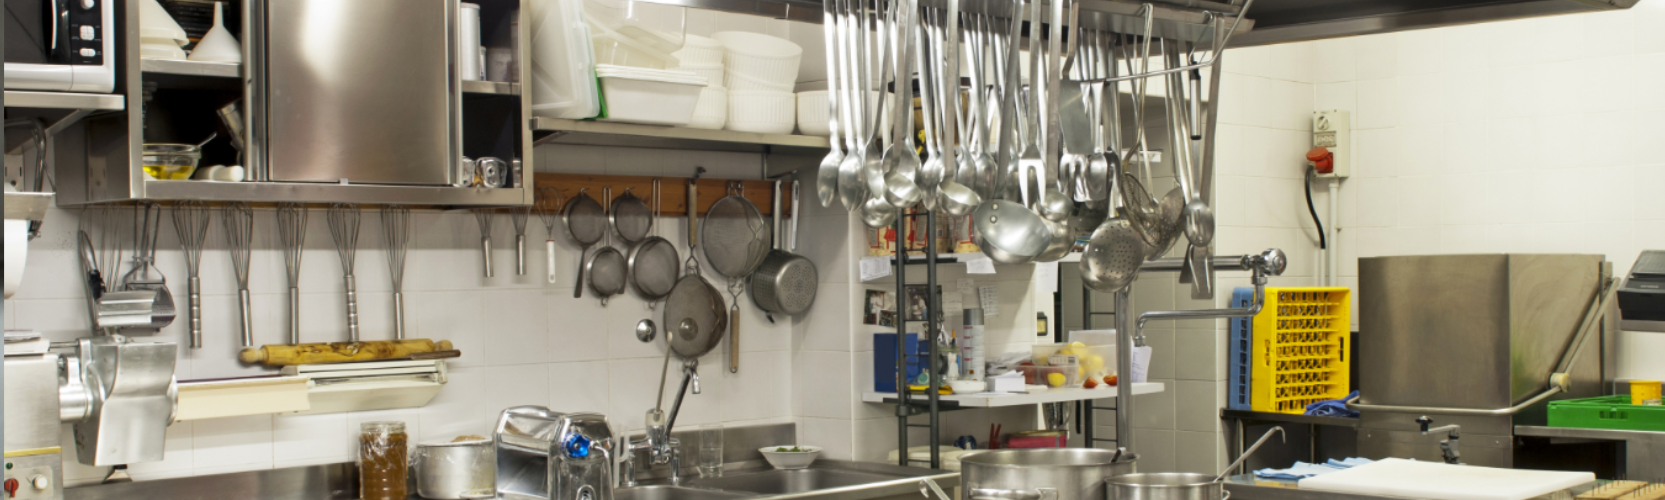 Commercial Oven Cleaning in Wakefield - CleanCare Ltd